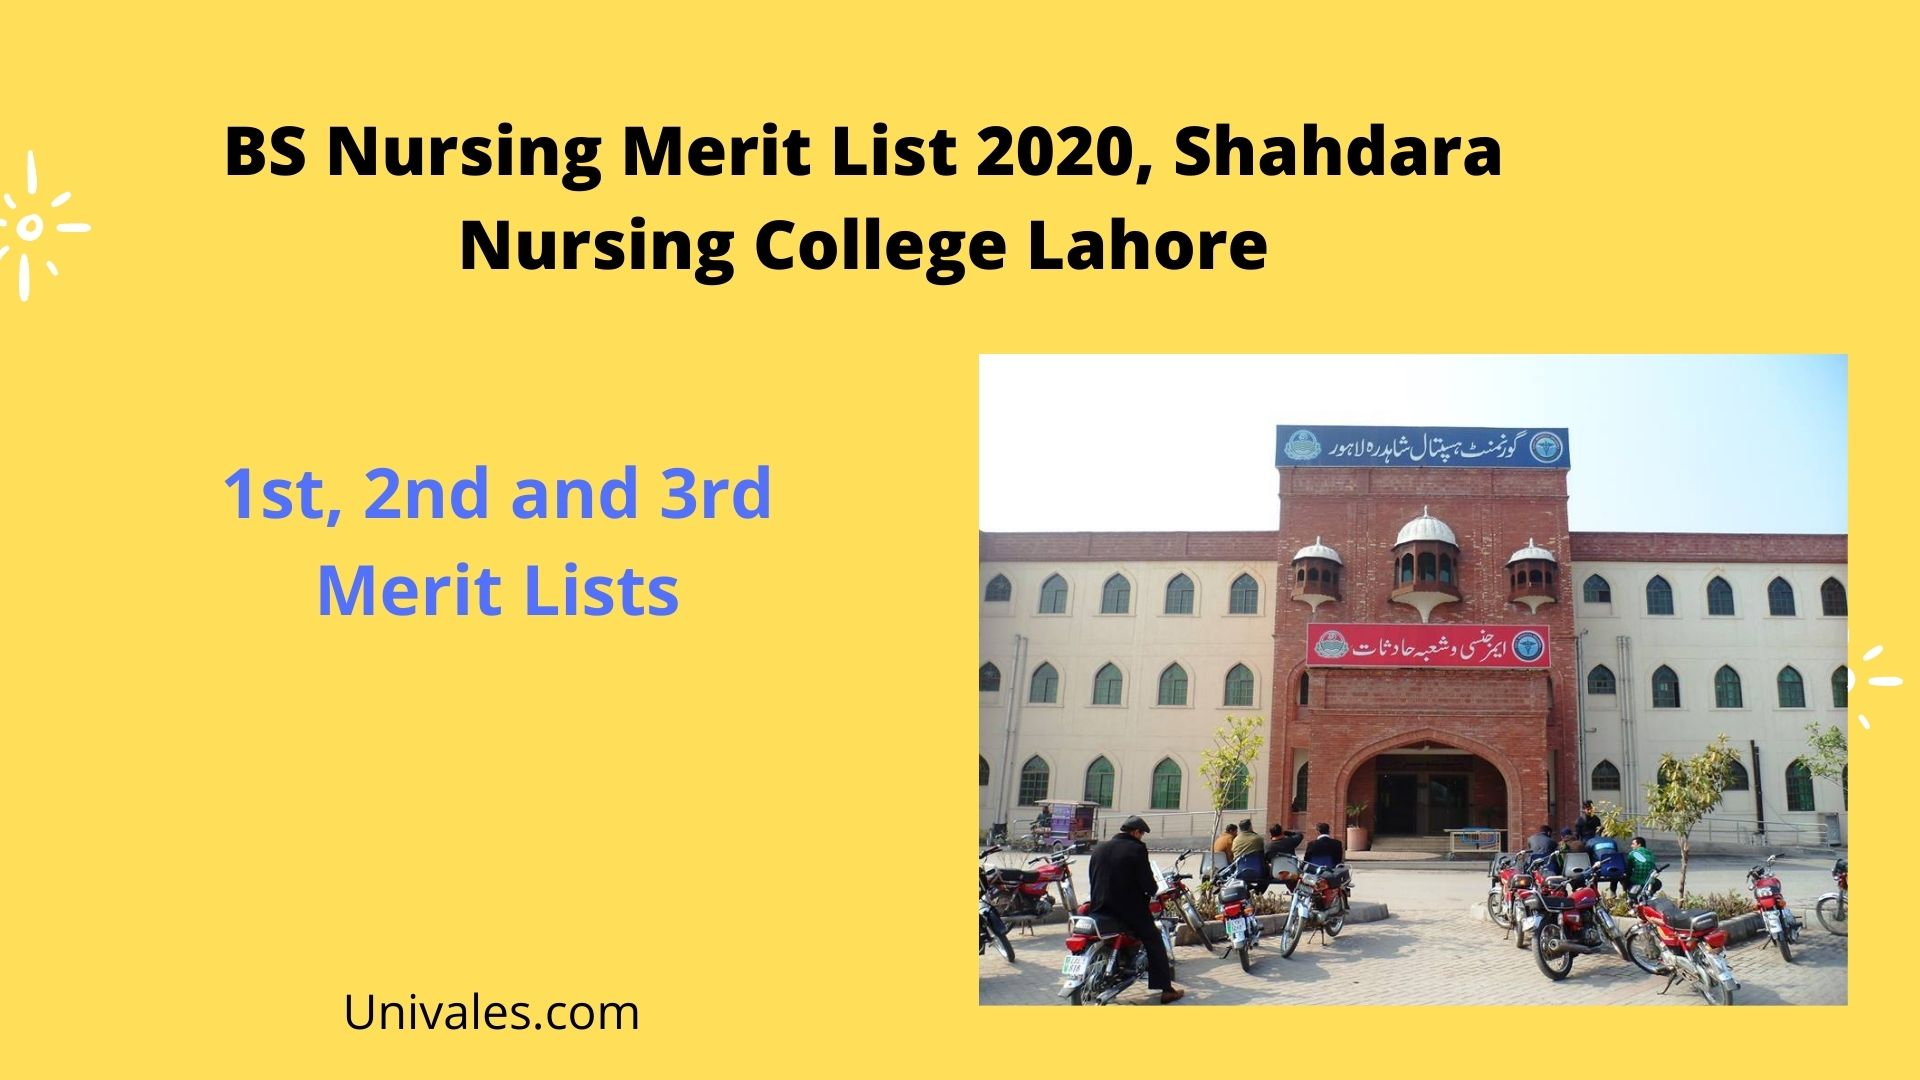 BS Nursing Merit List 2020 Shahdara Nursing College Lahore